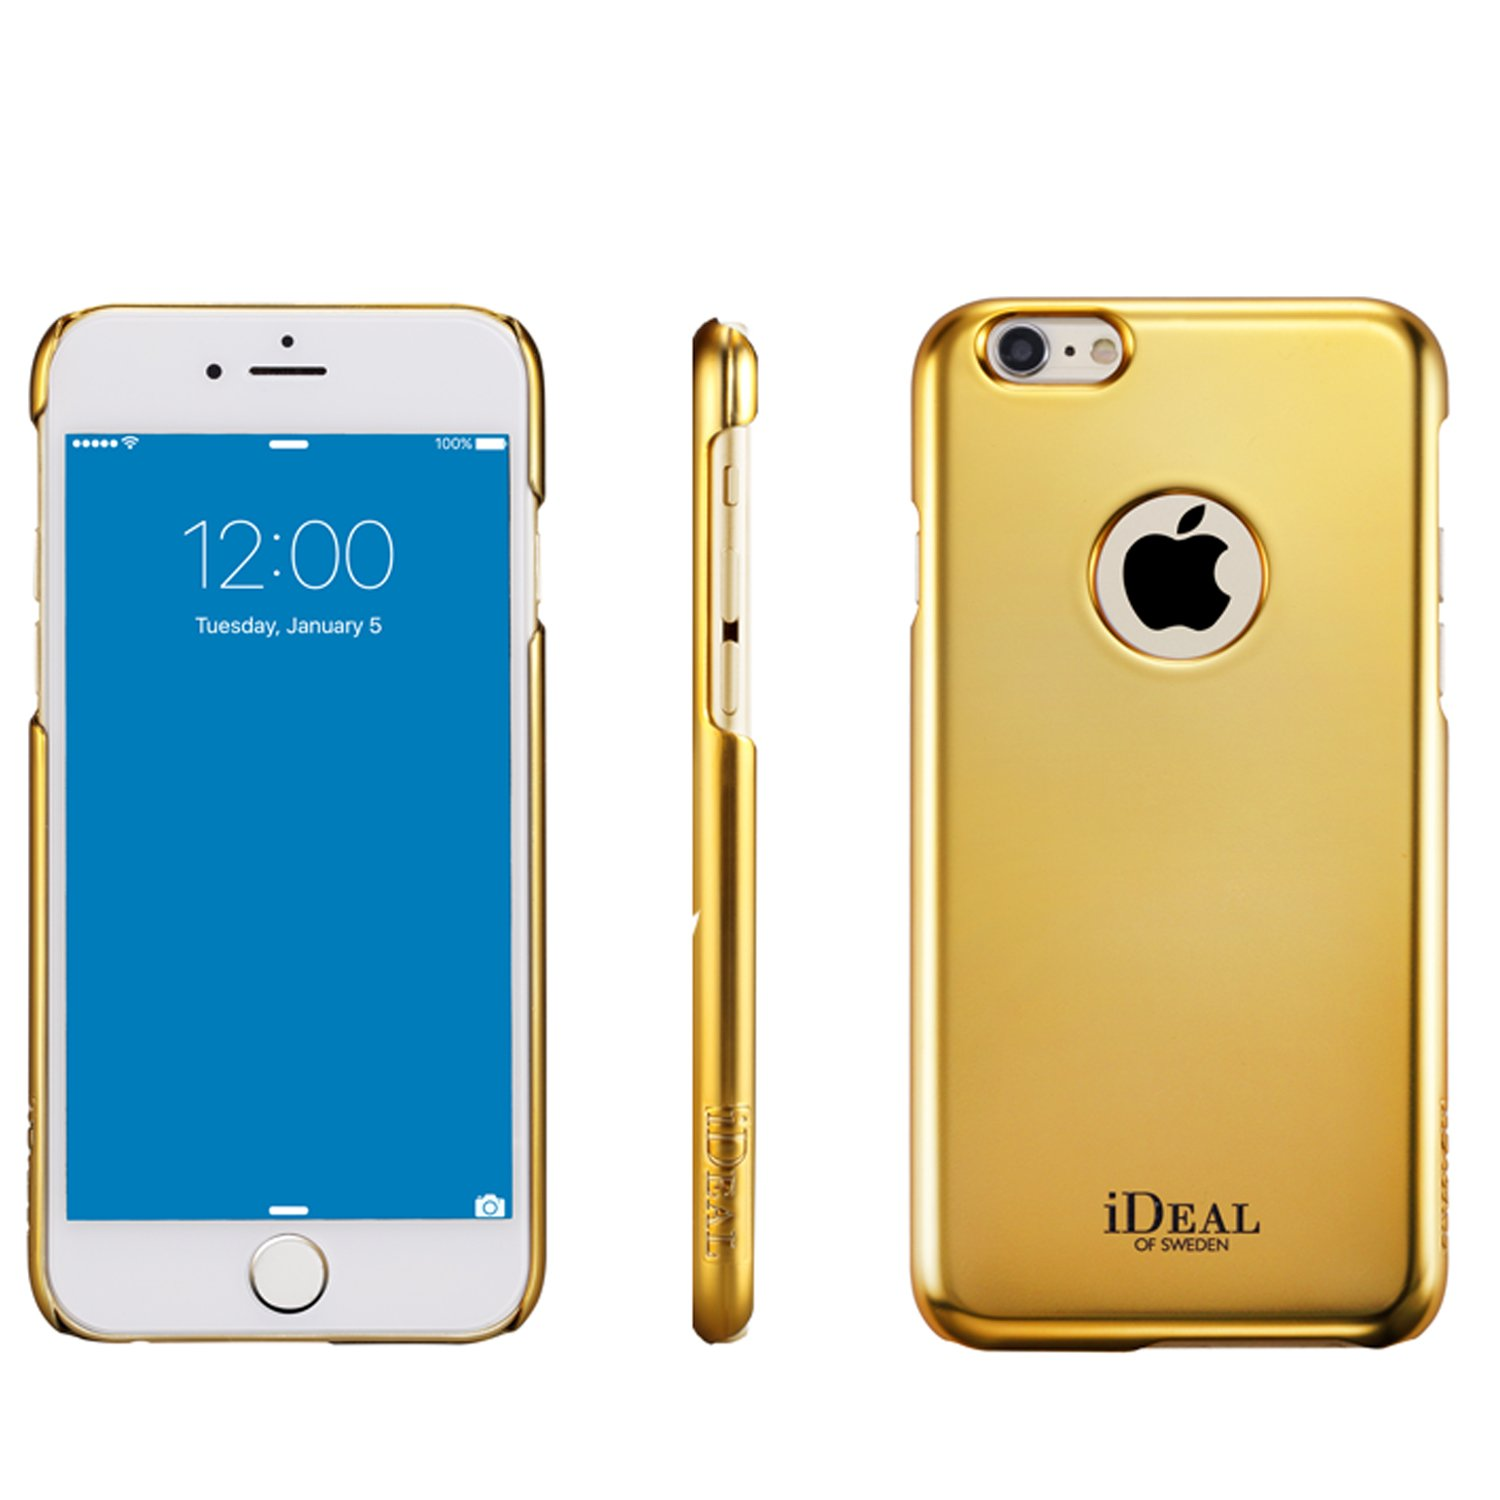 iphone 5s gold price in sweden